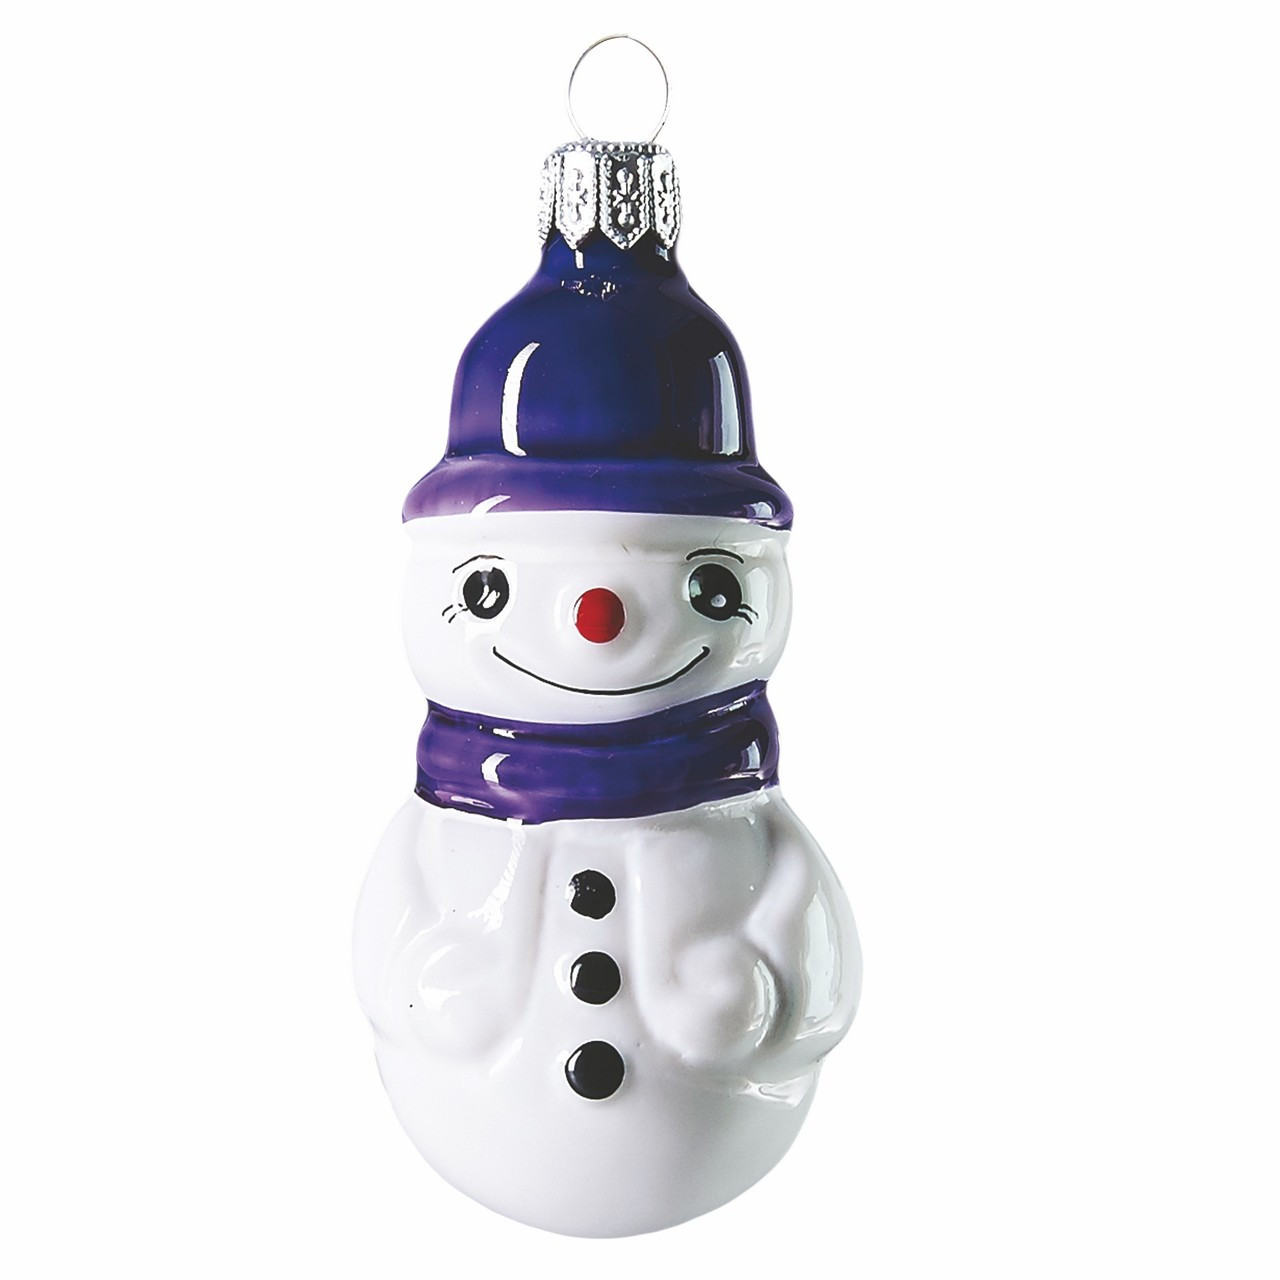 Snowman With Purple Hat Hand Crafted Christmas Ornament Made Of Glass Mouth Blown